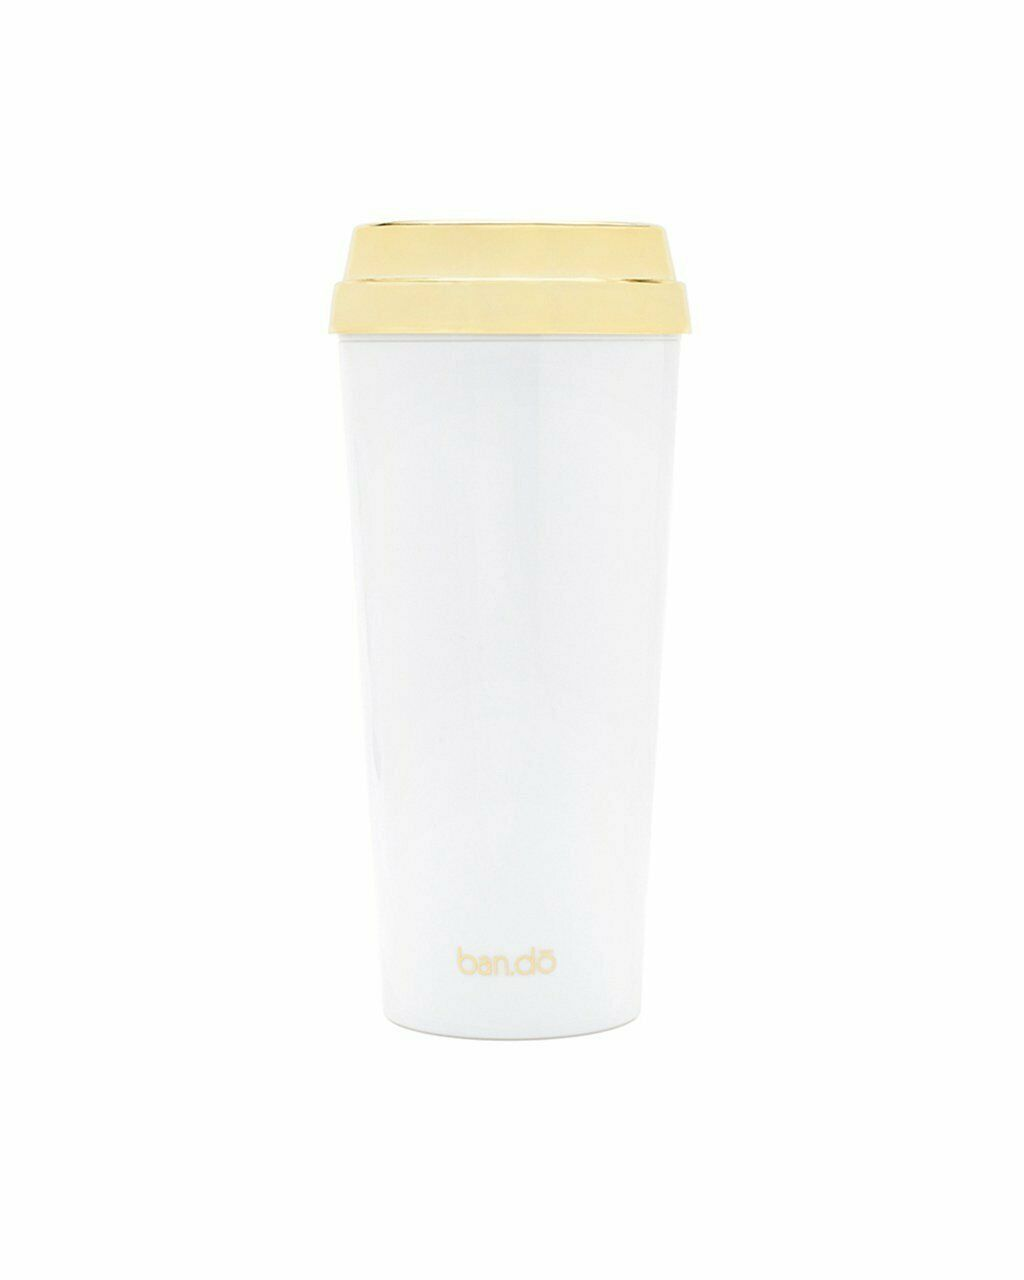 Ban.do Deluxe Hot Stuff Insulated Thermal Travel Mug 16 Ounces But First Coff... image 2